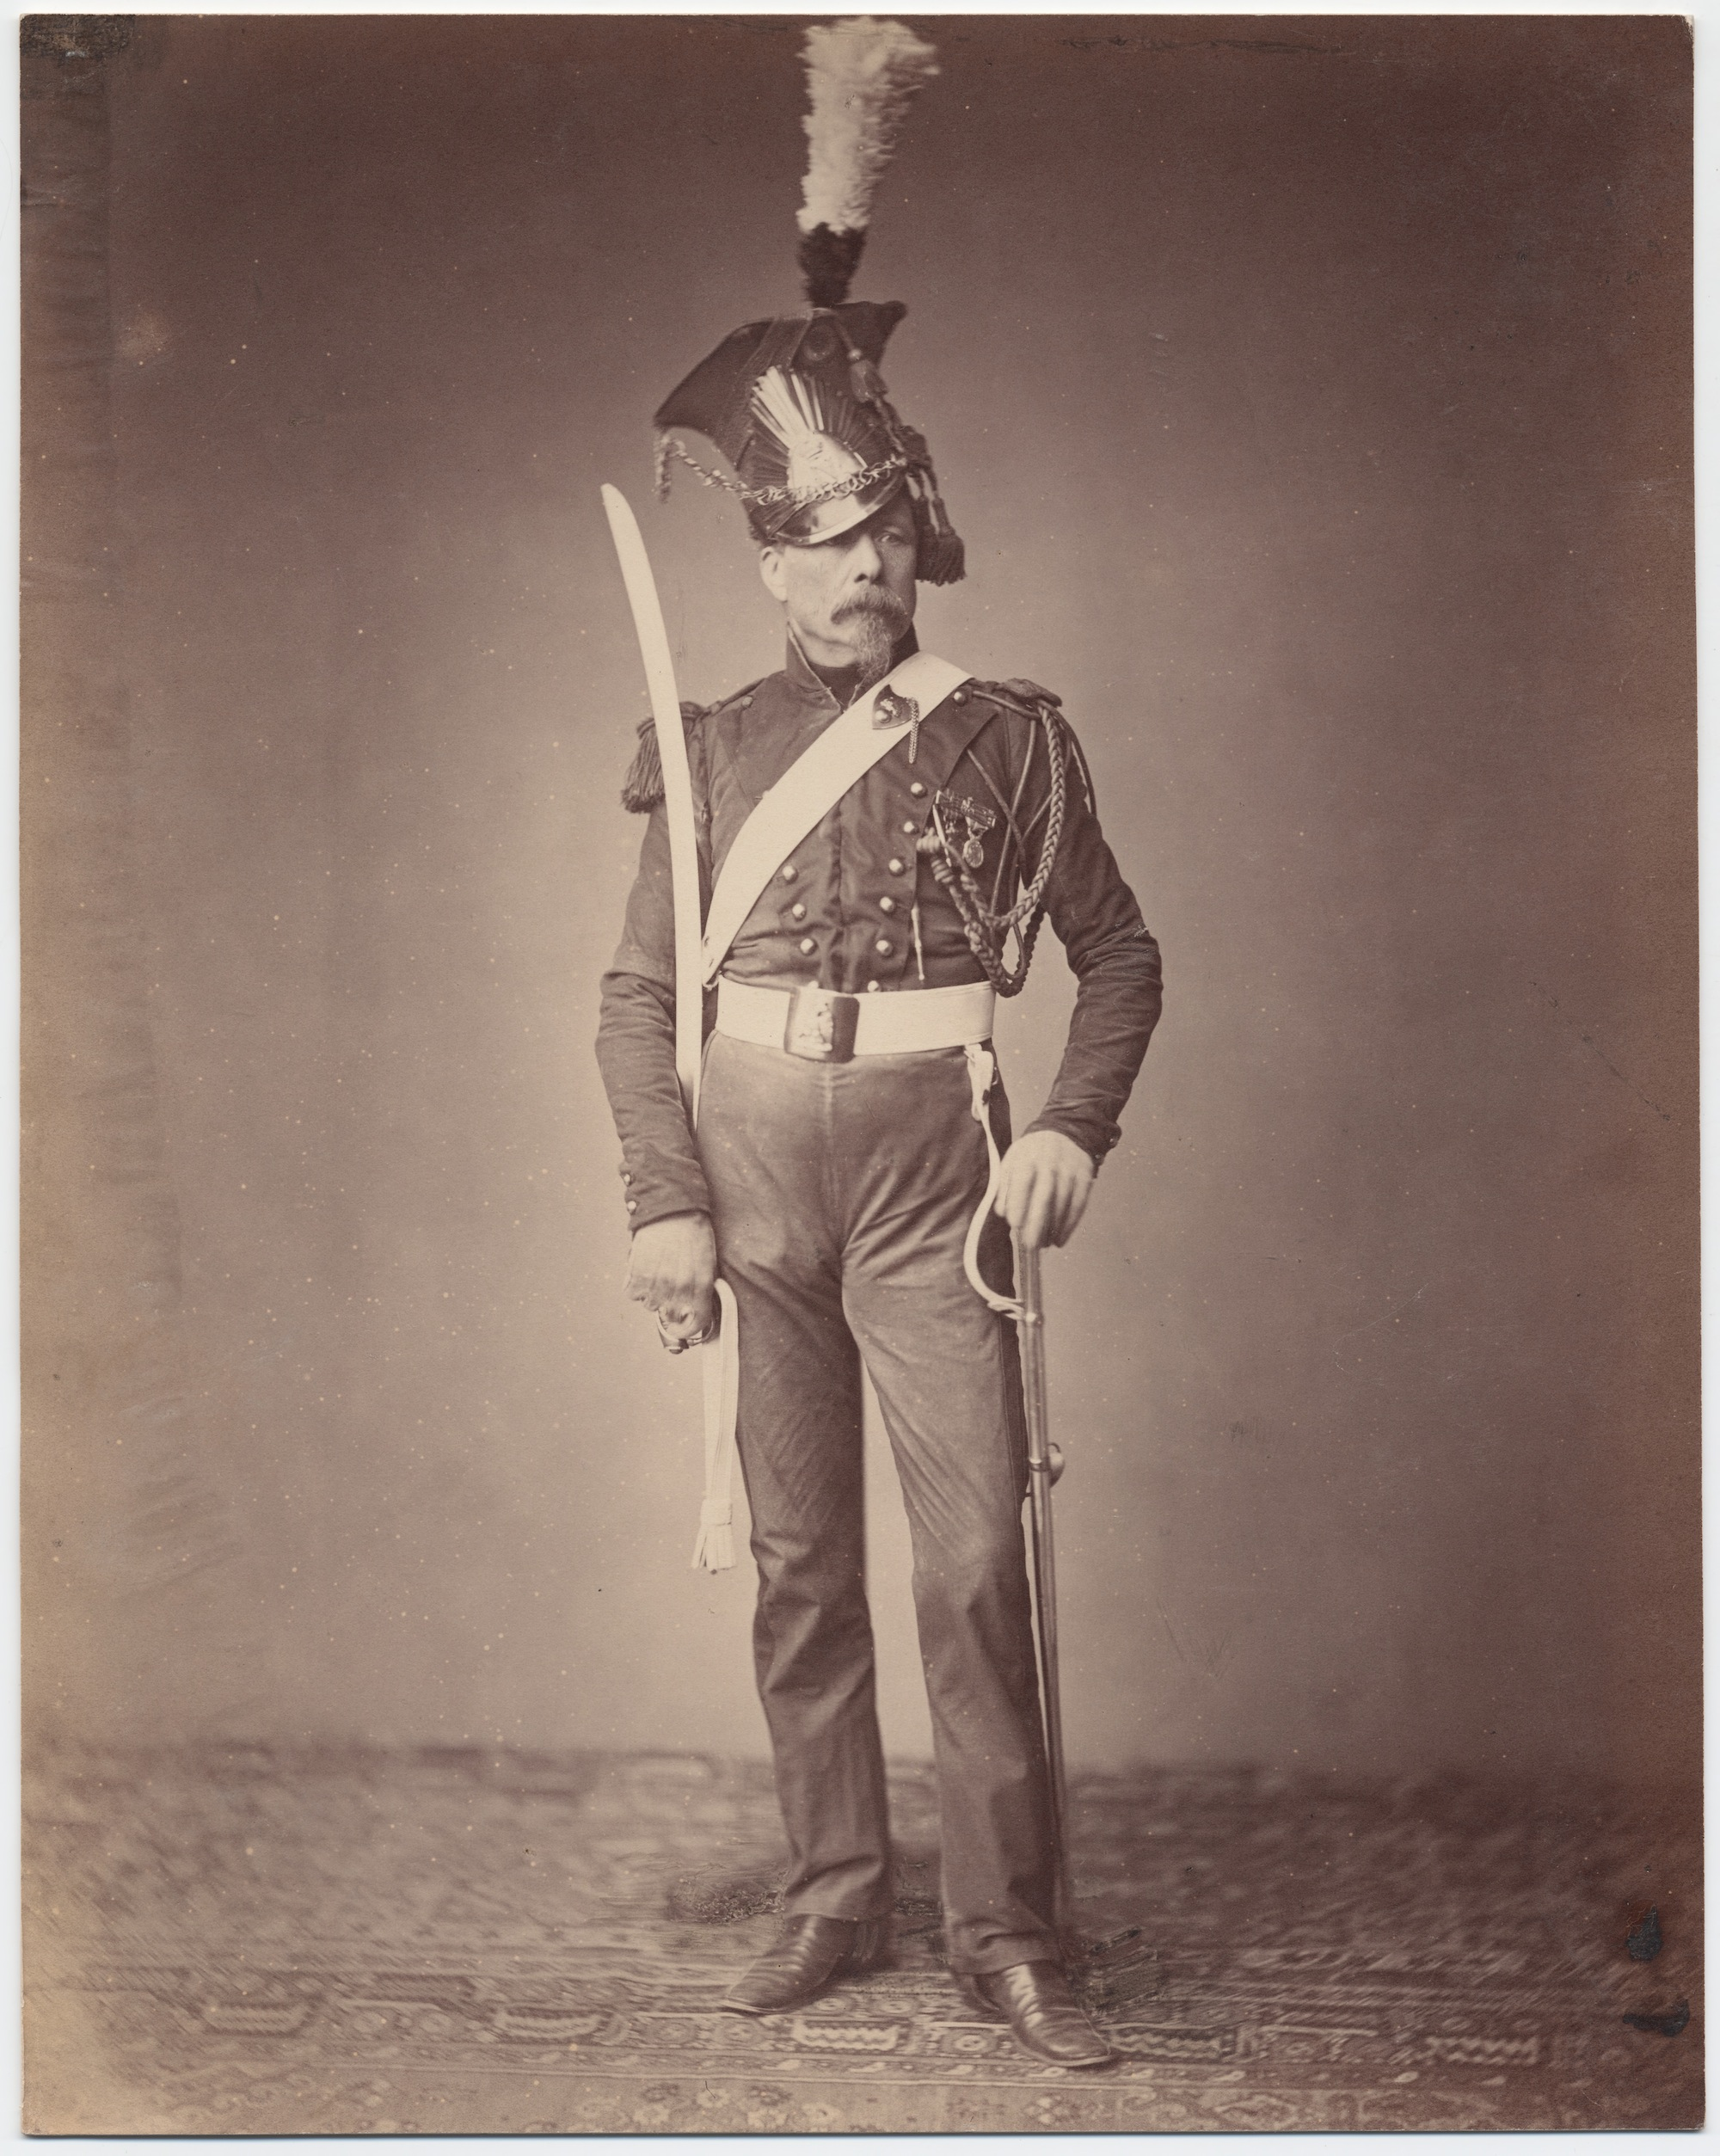 Monsieur Verlinde of the 2nd Lancers, 1815